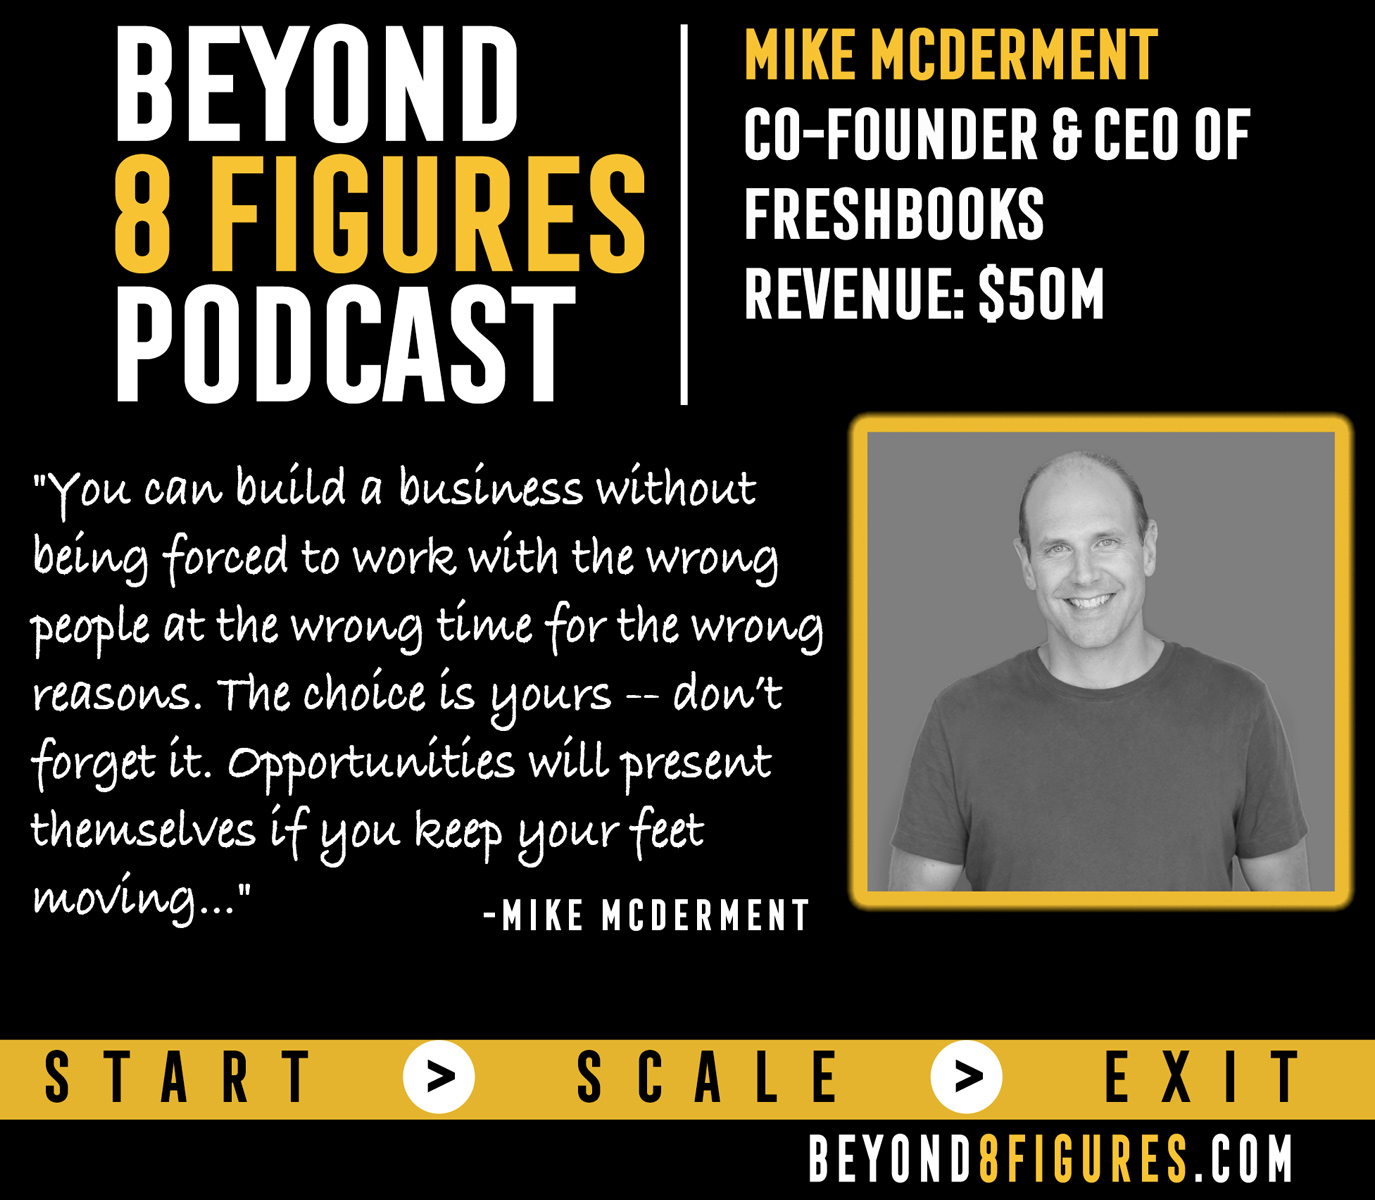 $50M in annual revenue – Mike McDerment, Freshbooks